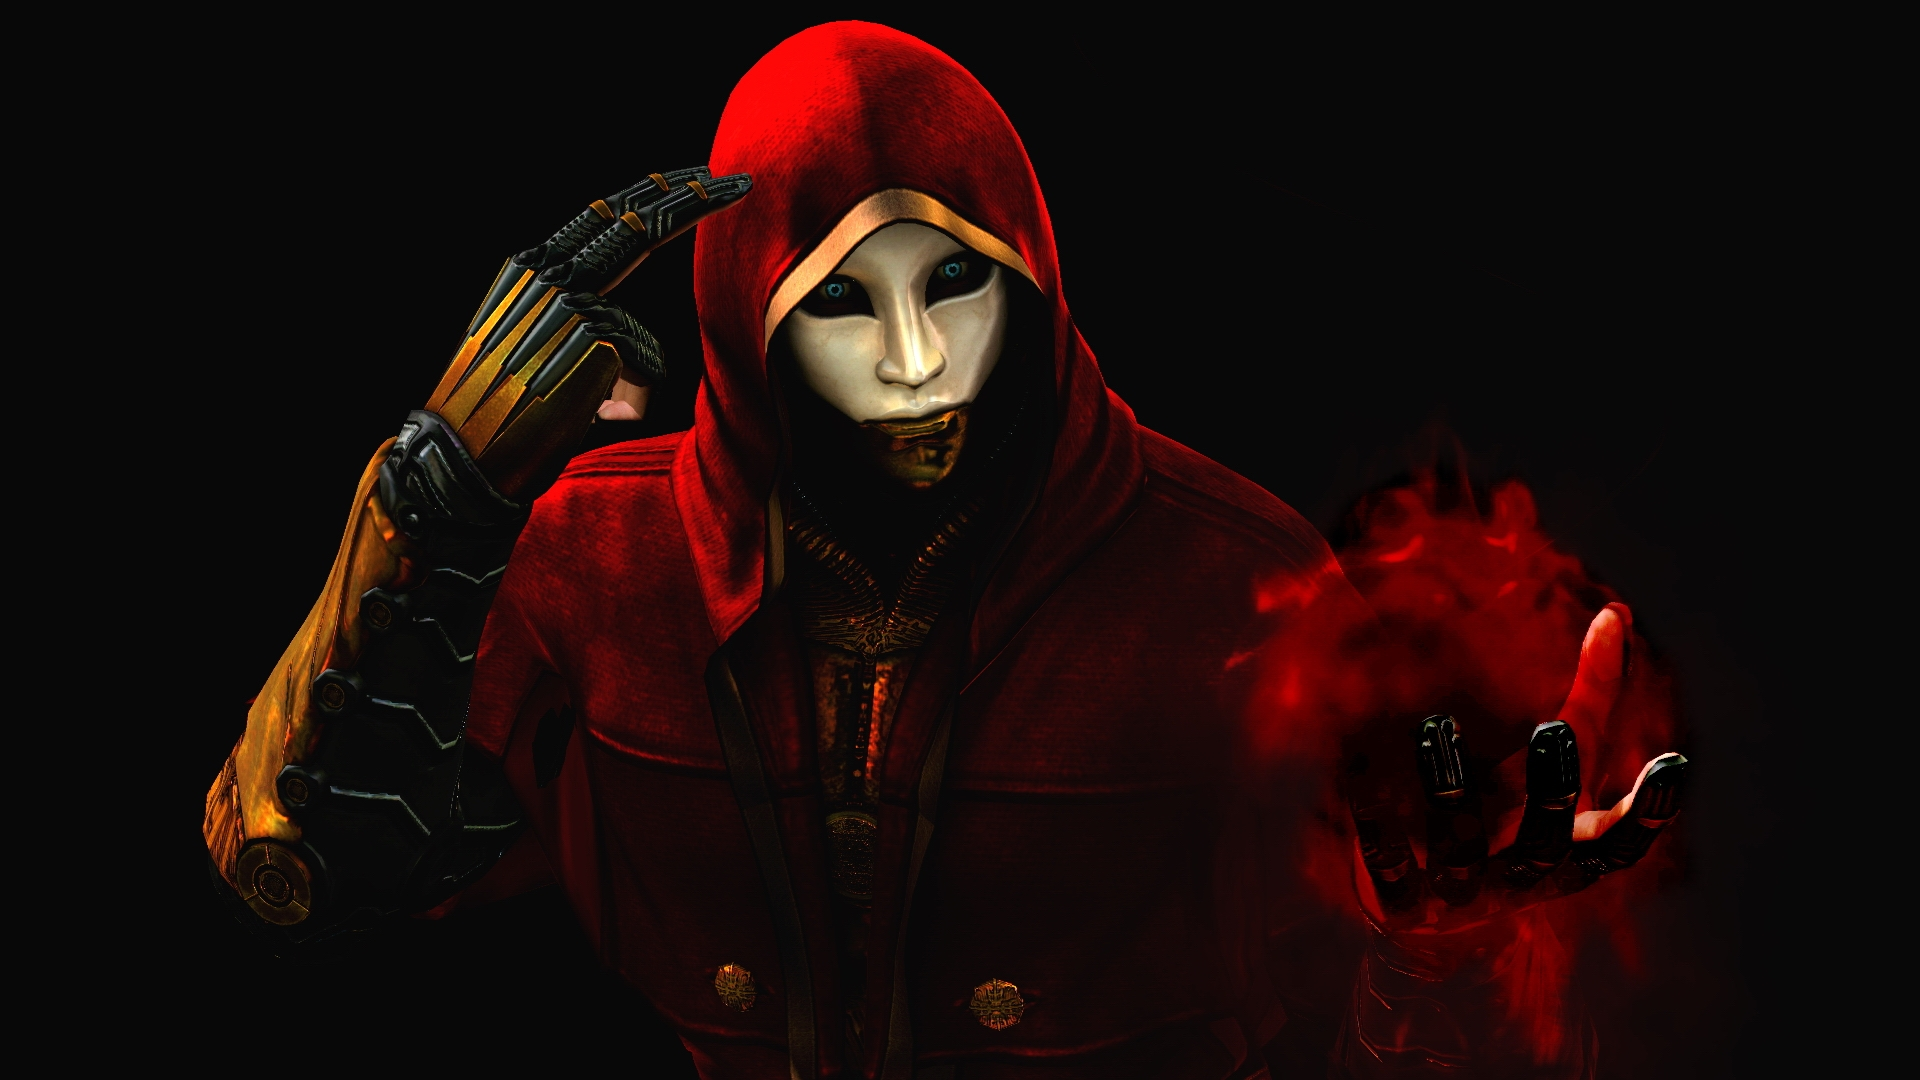 Fantasy Art Ninja Mask Wallpapers Hd Desktop And: Download Wallpaper 1920x1080 Ninja Aiden, Magic, Hand